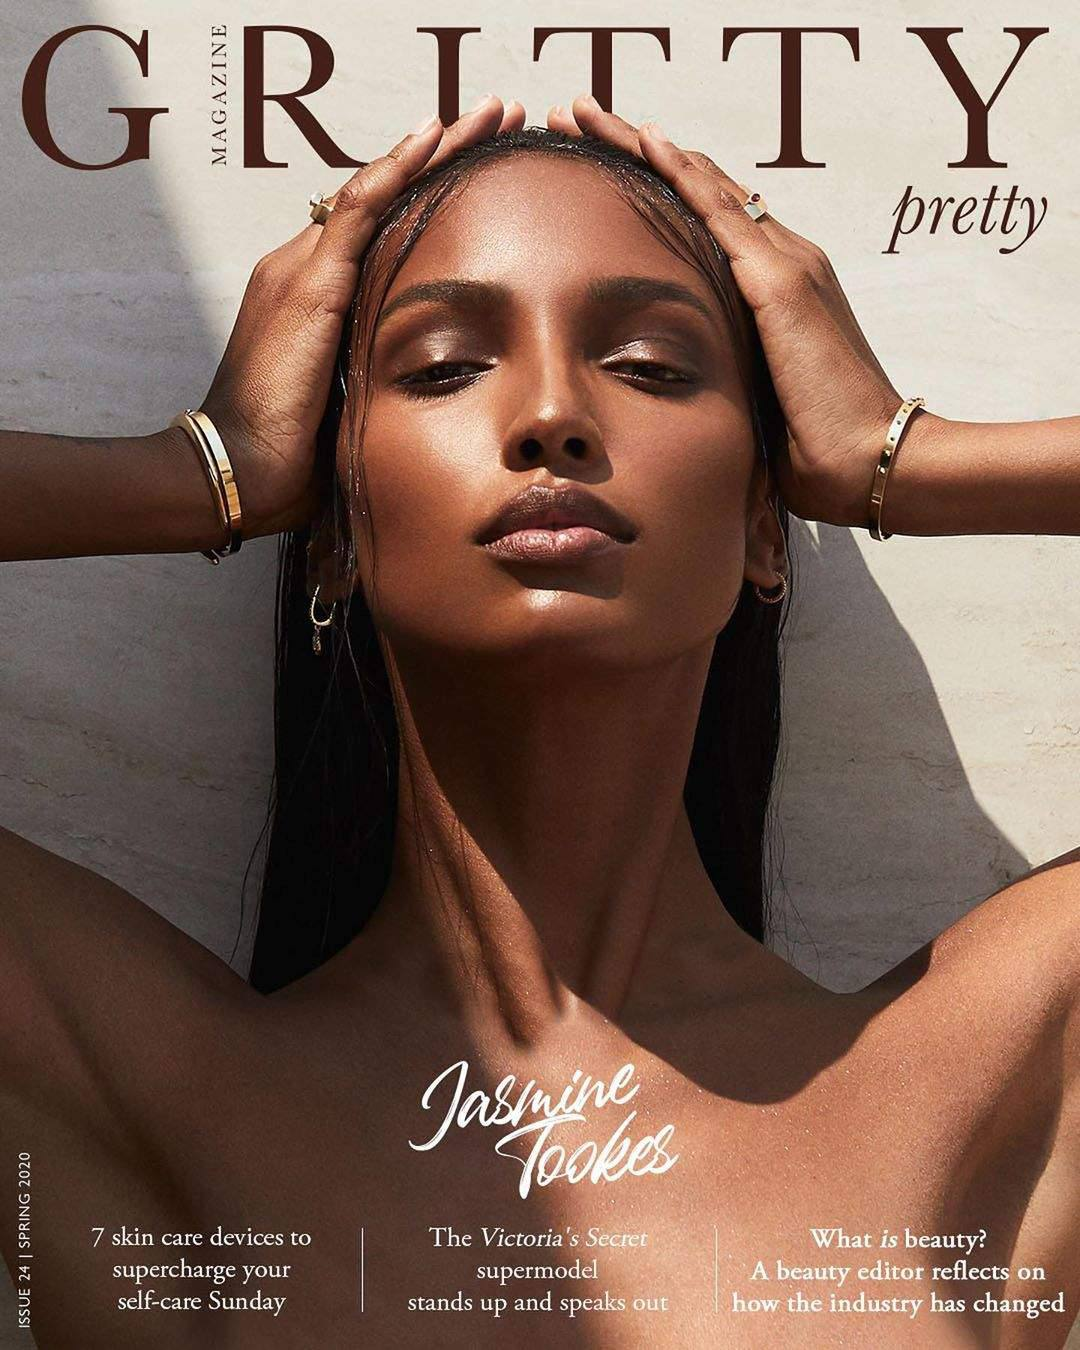 Jasmine Tookes - Beautiful Naked Body in Gritty Magazine Photoshoot (Issue 24 Spring 2020)